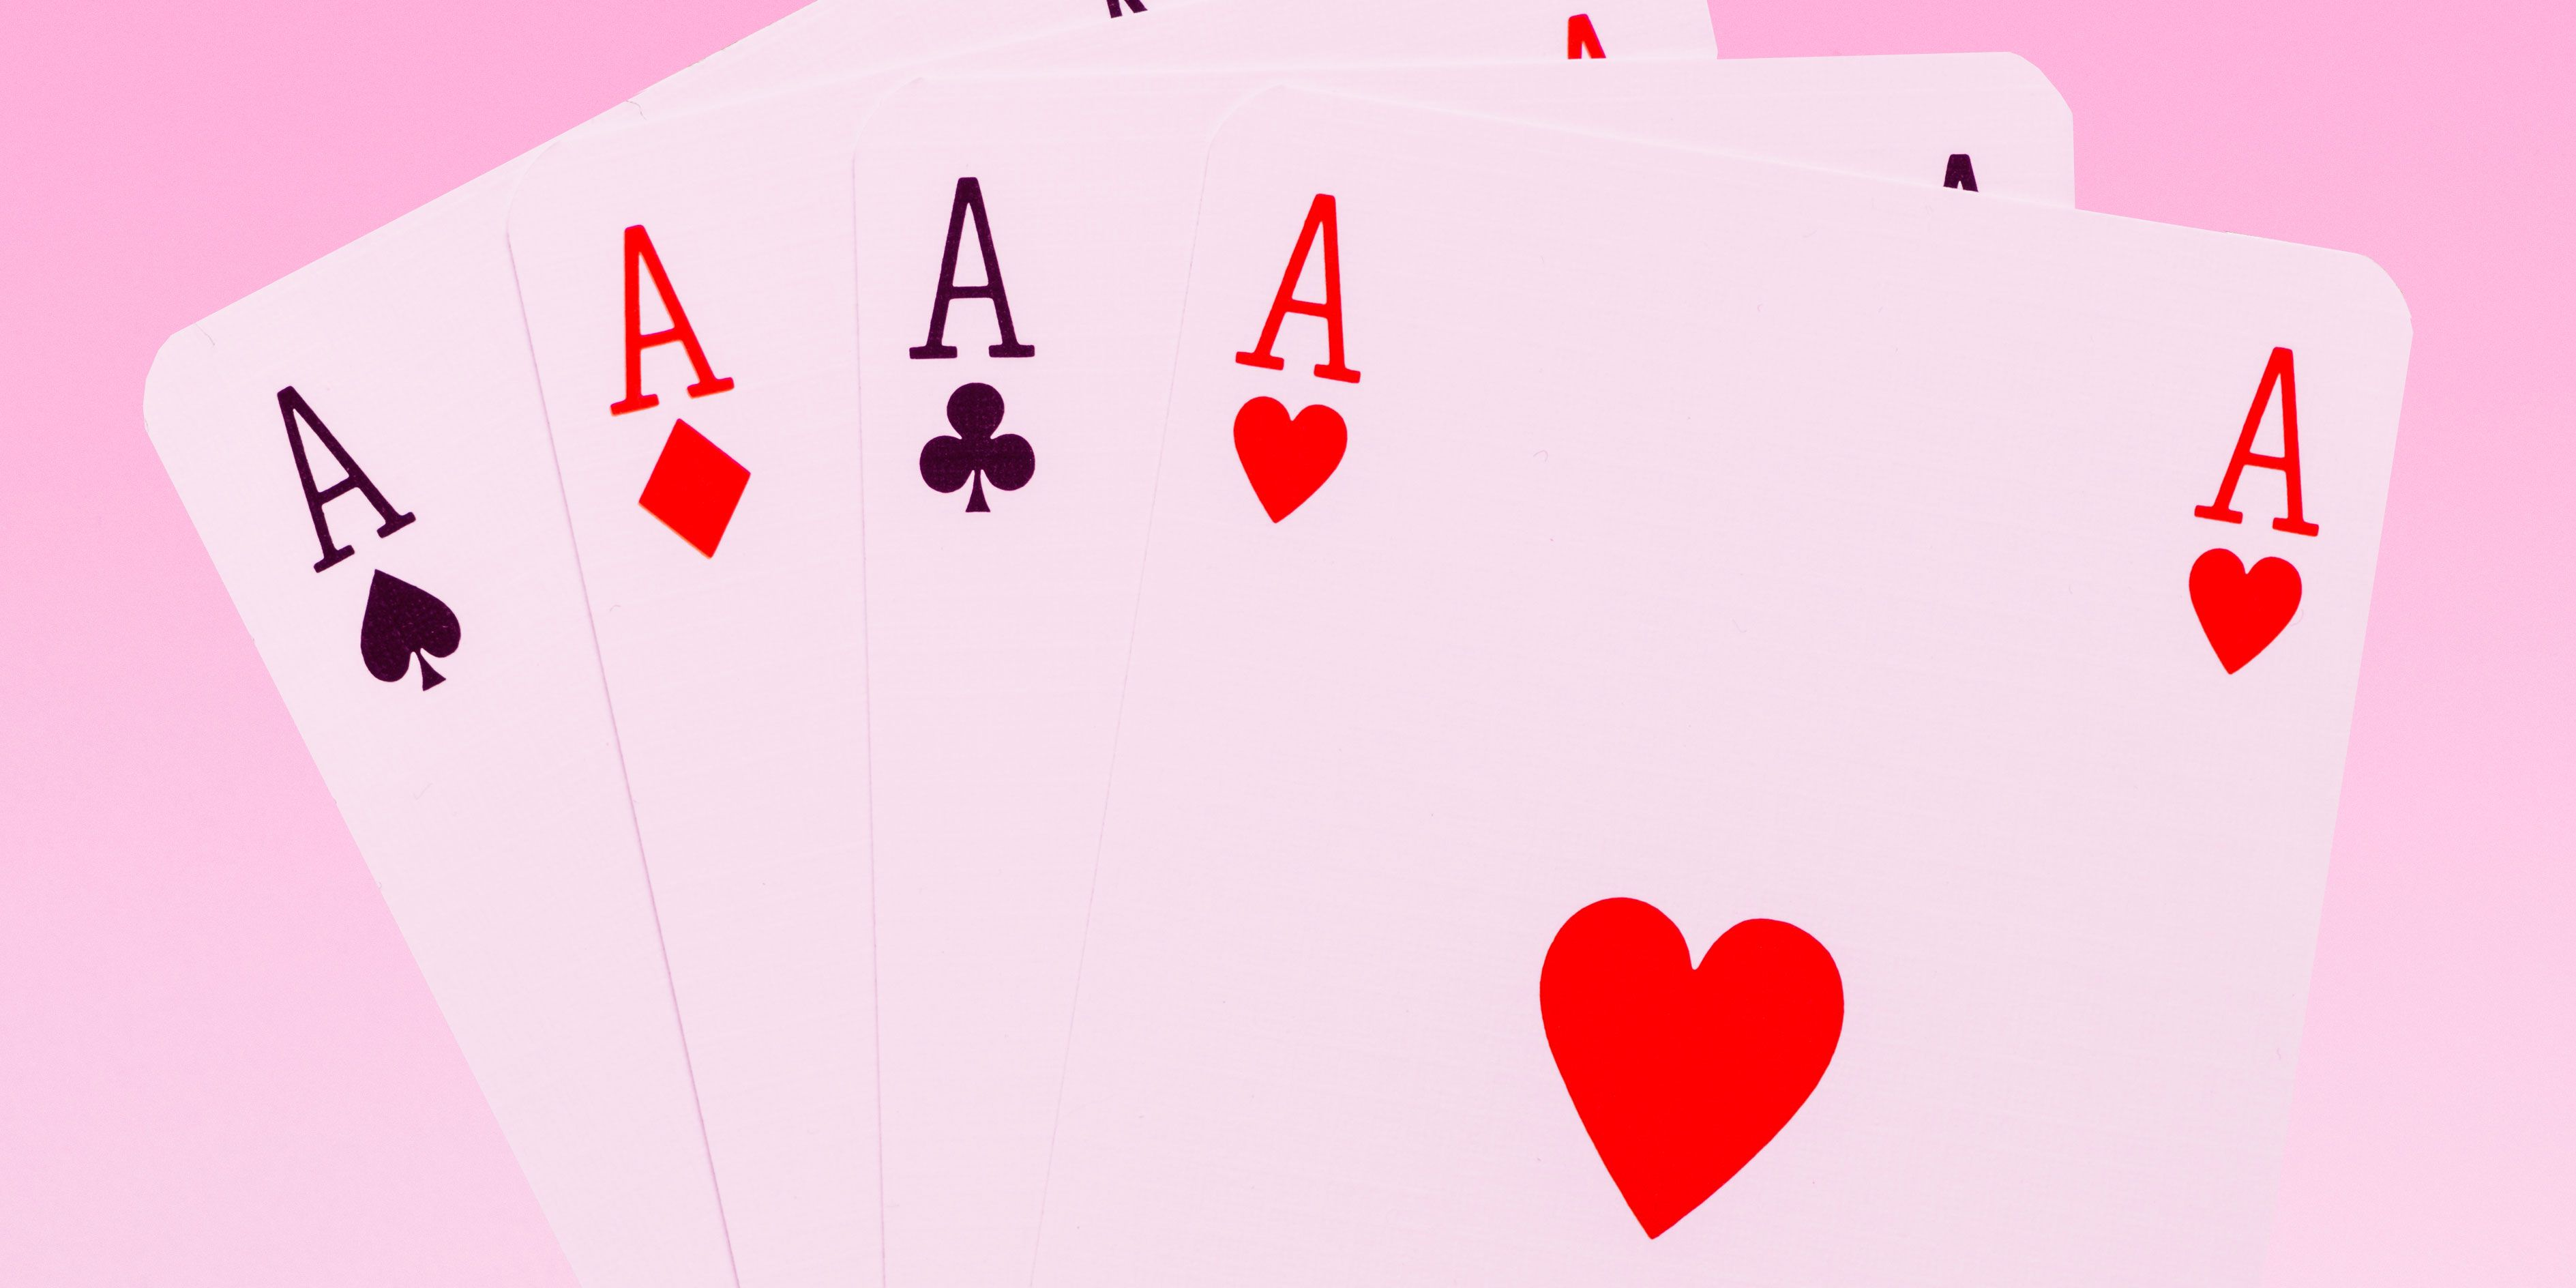 playing cards, ace,